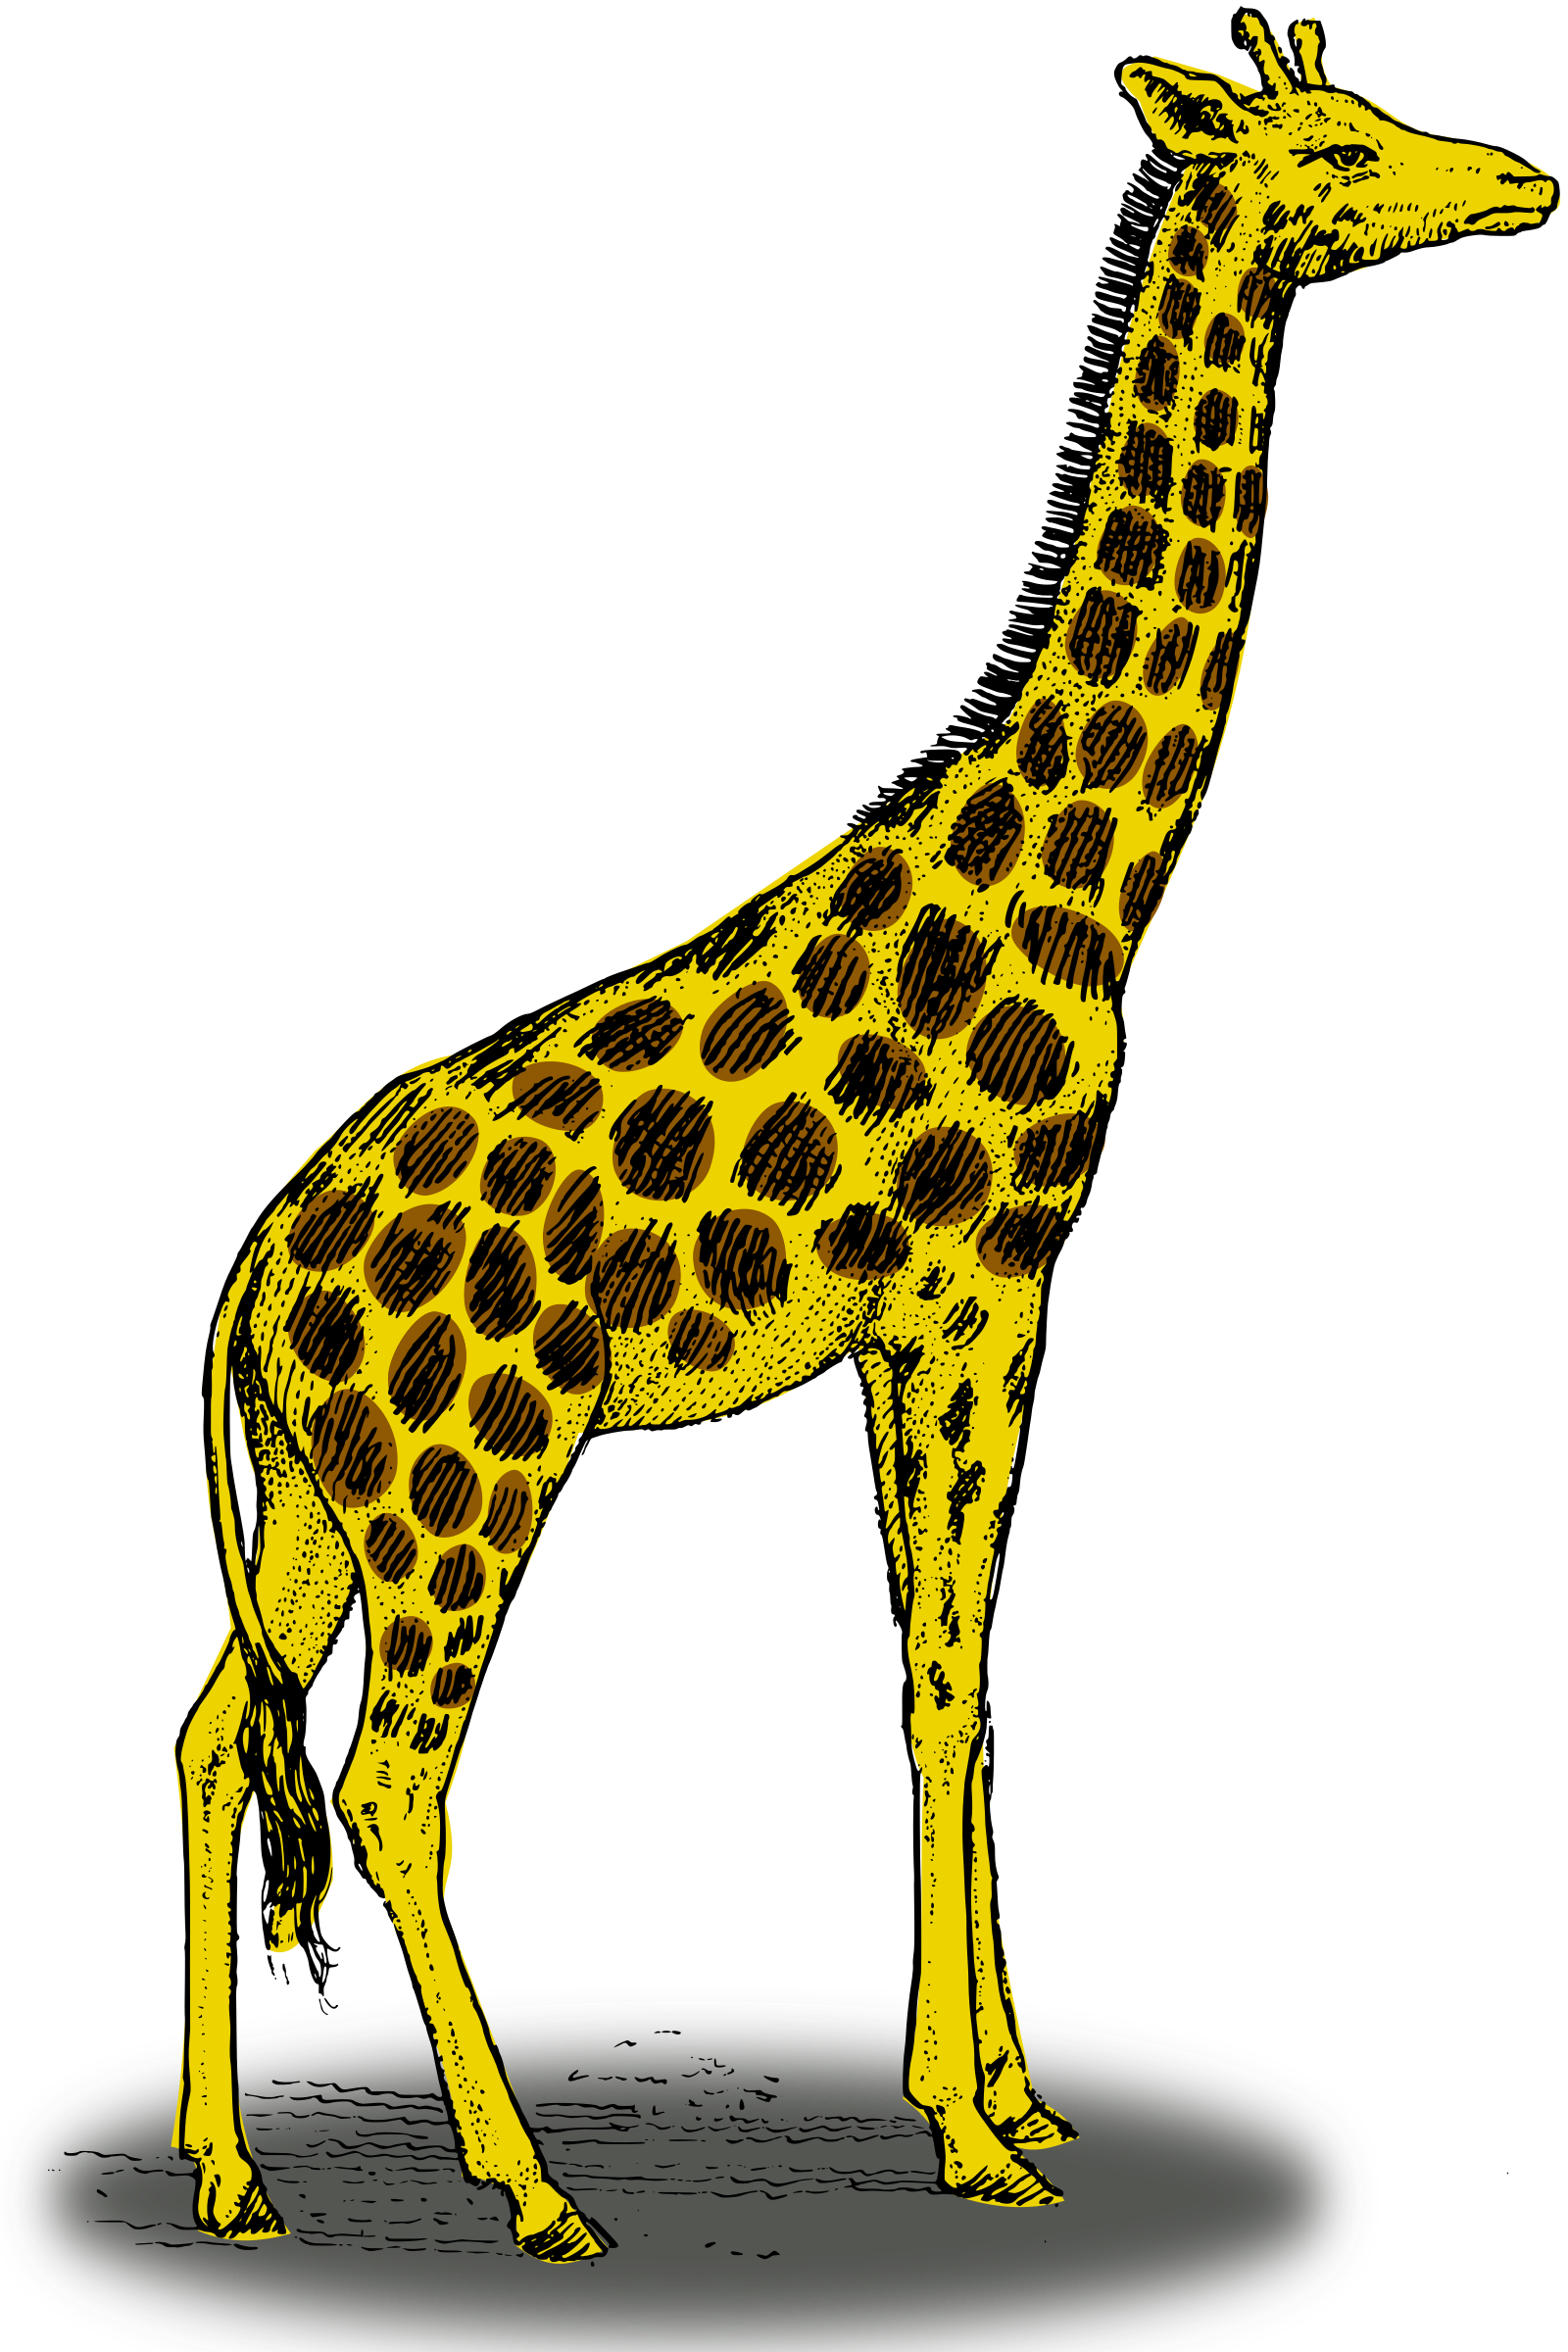 Girrafe drawing color. Collection of giraffe